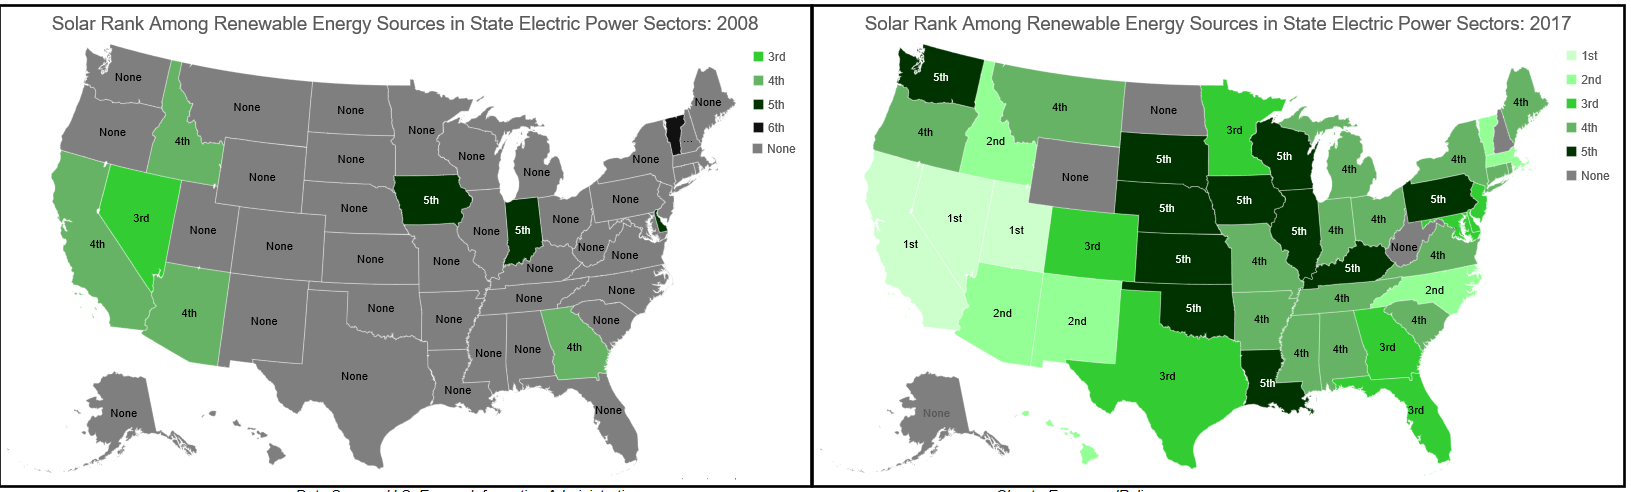 solar power, renewable energy, map, electric power sector